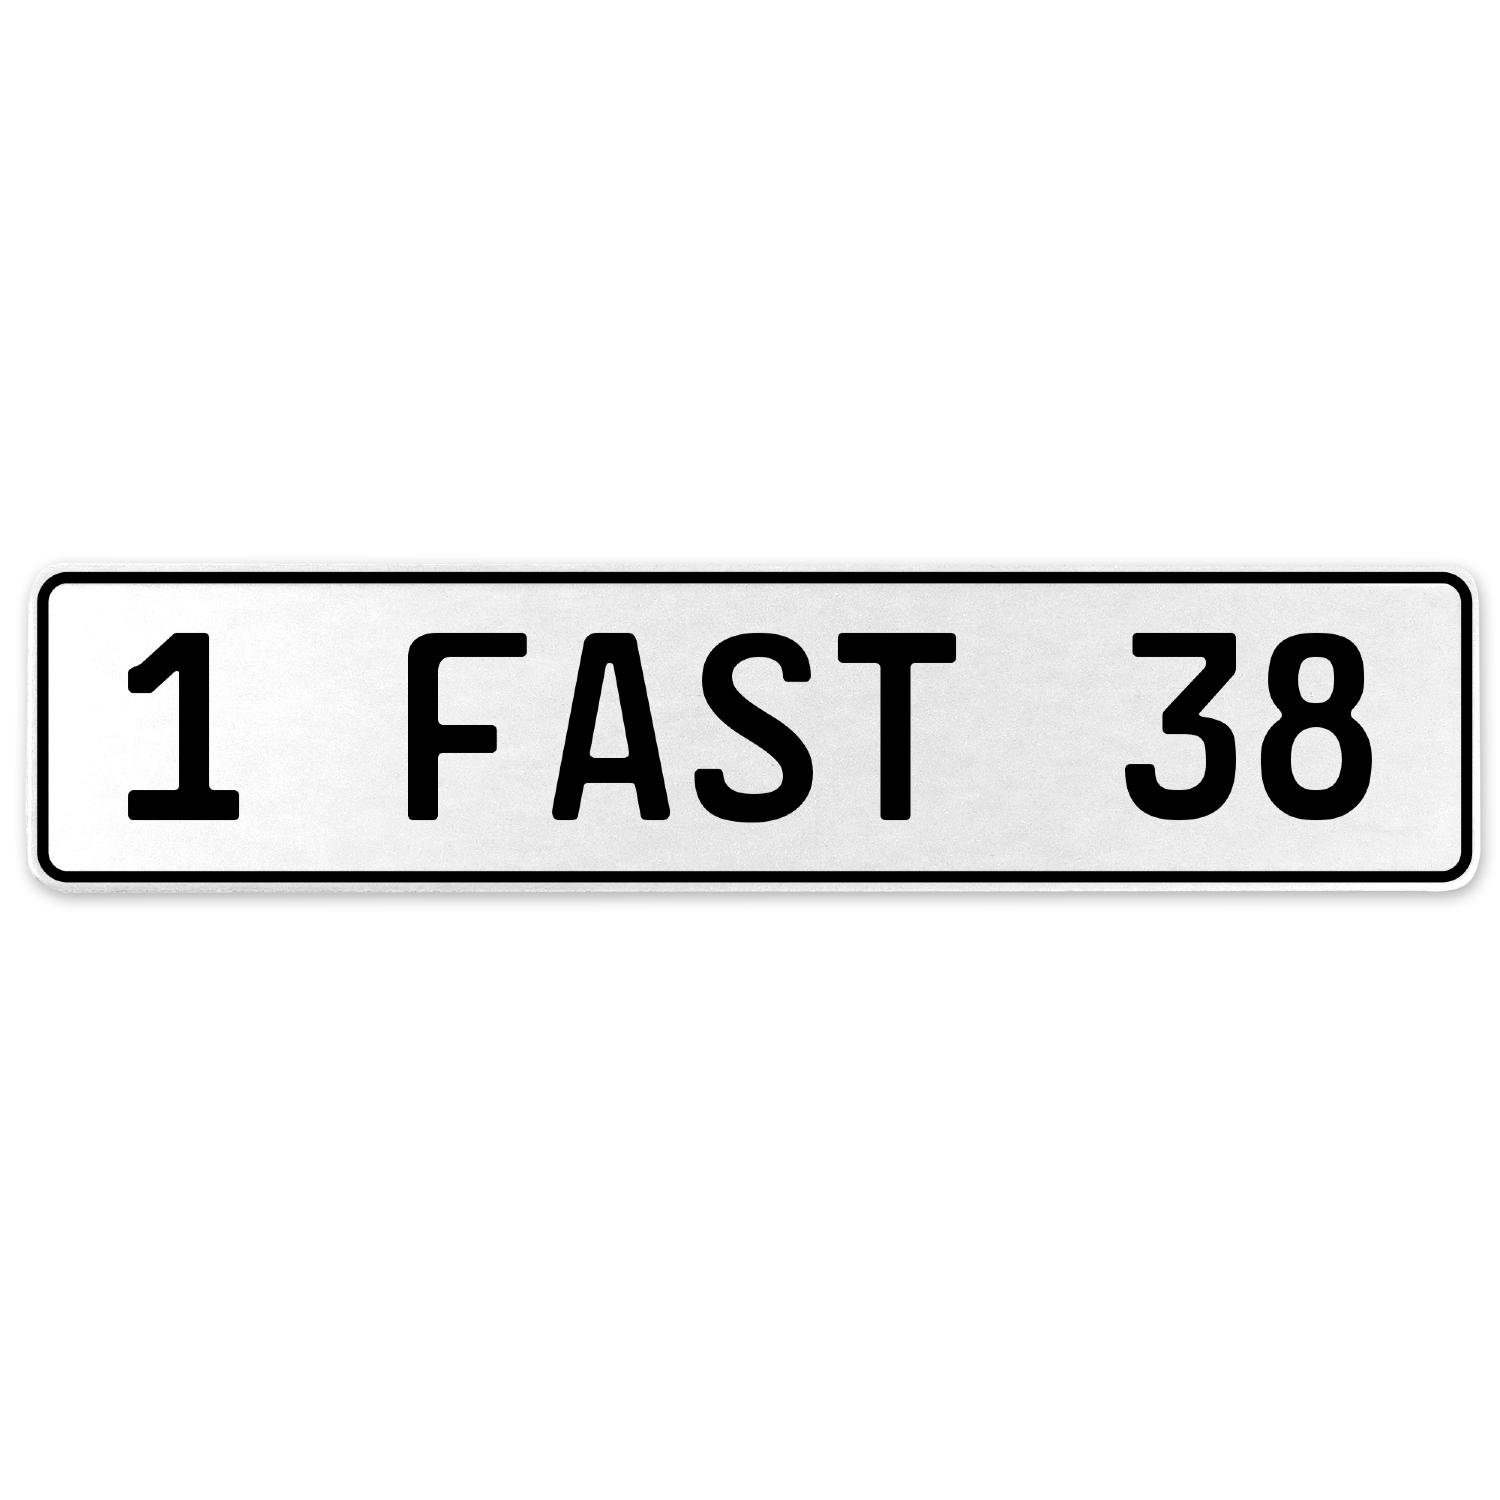 Vintage Parts 557407 1 Fast 38 White Stamped Aluminum European License Plate